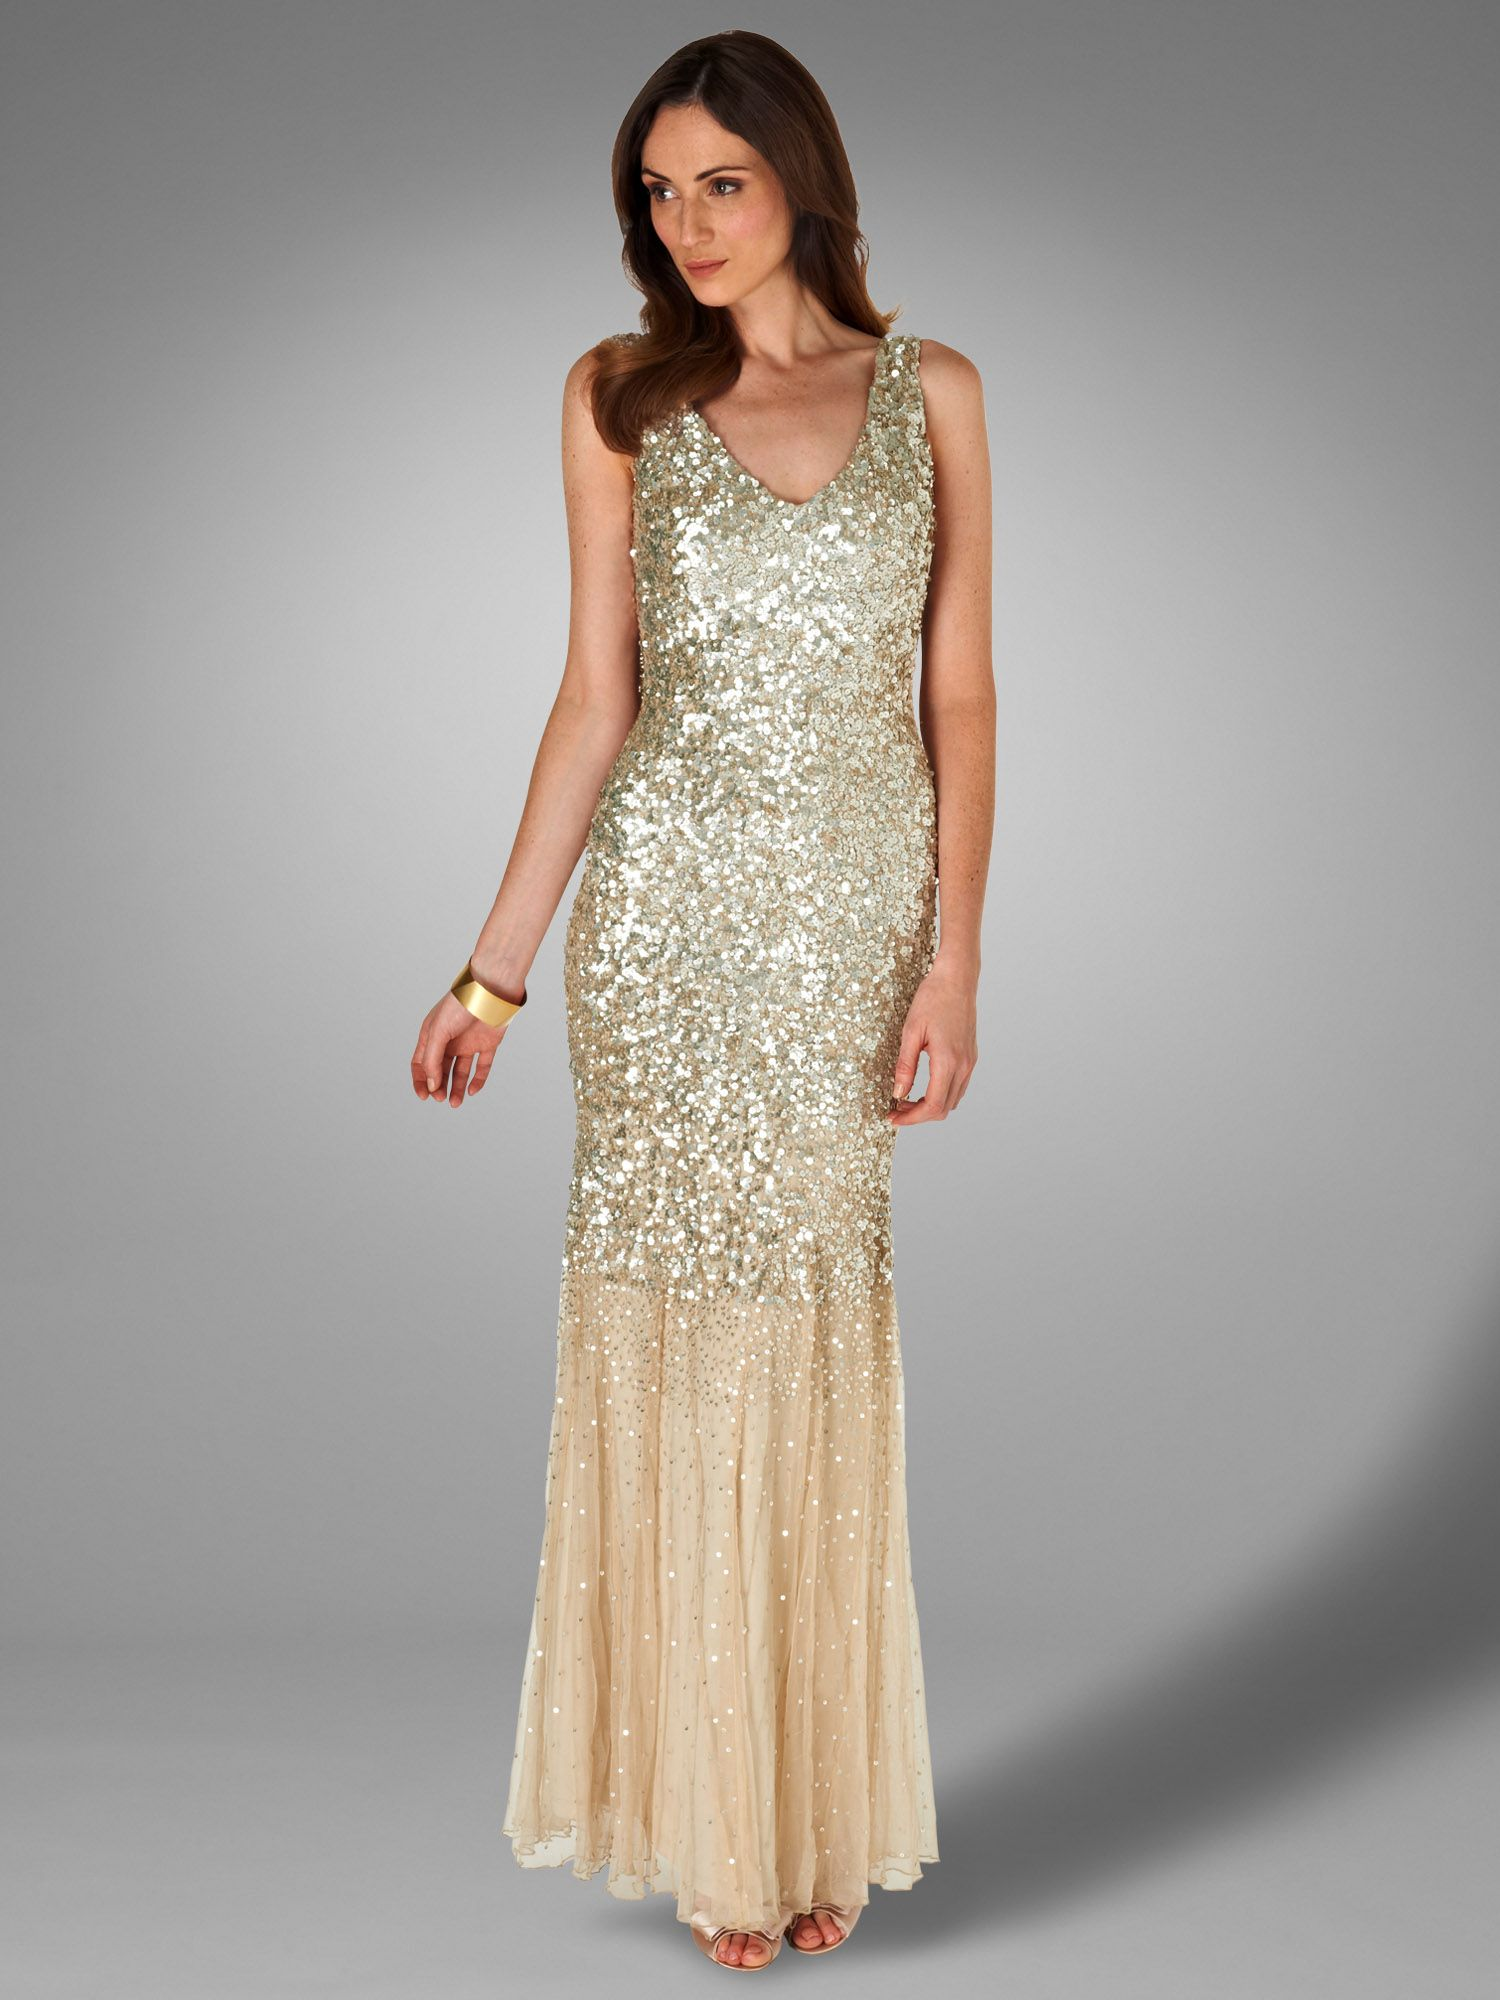 Luna sequin full length dress